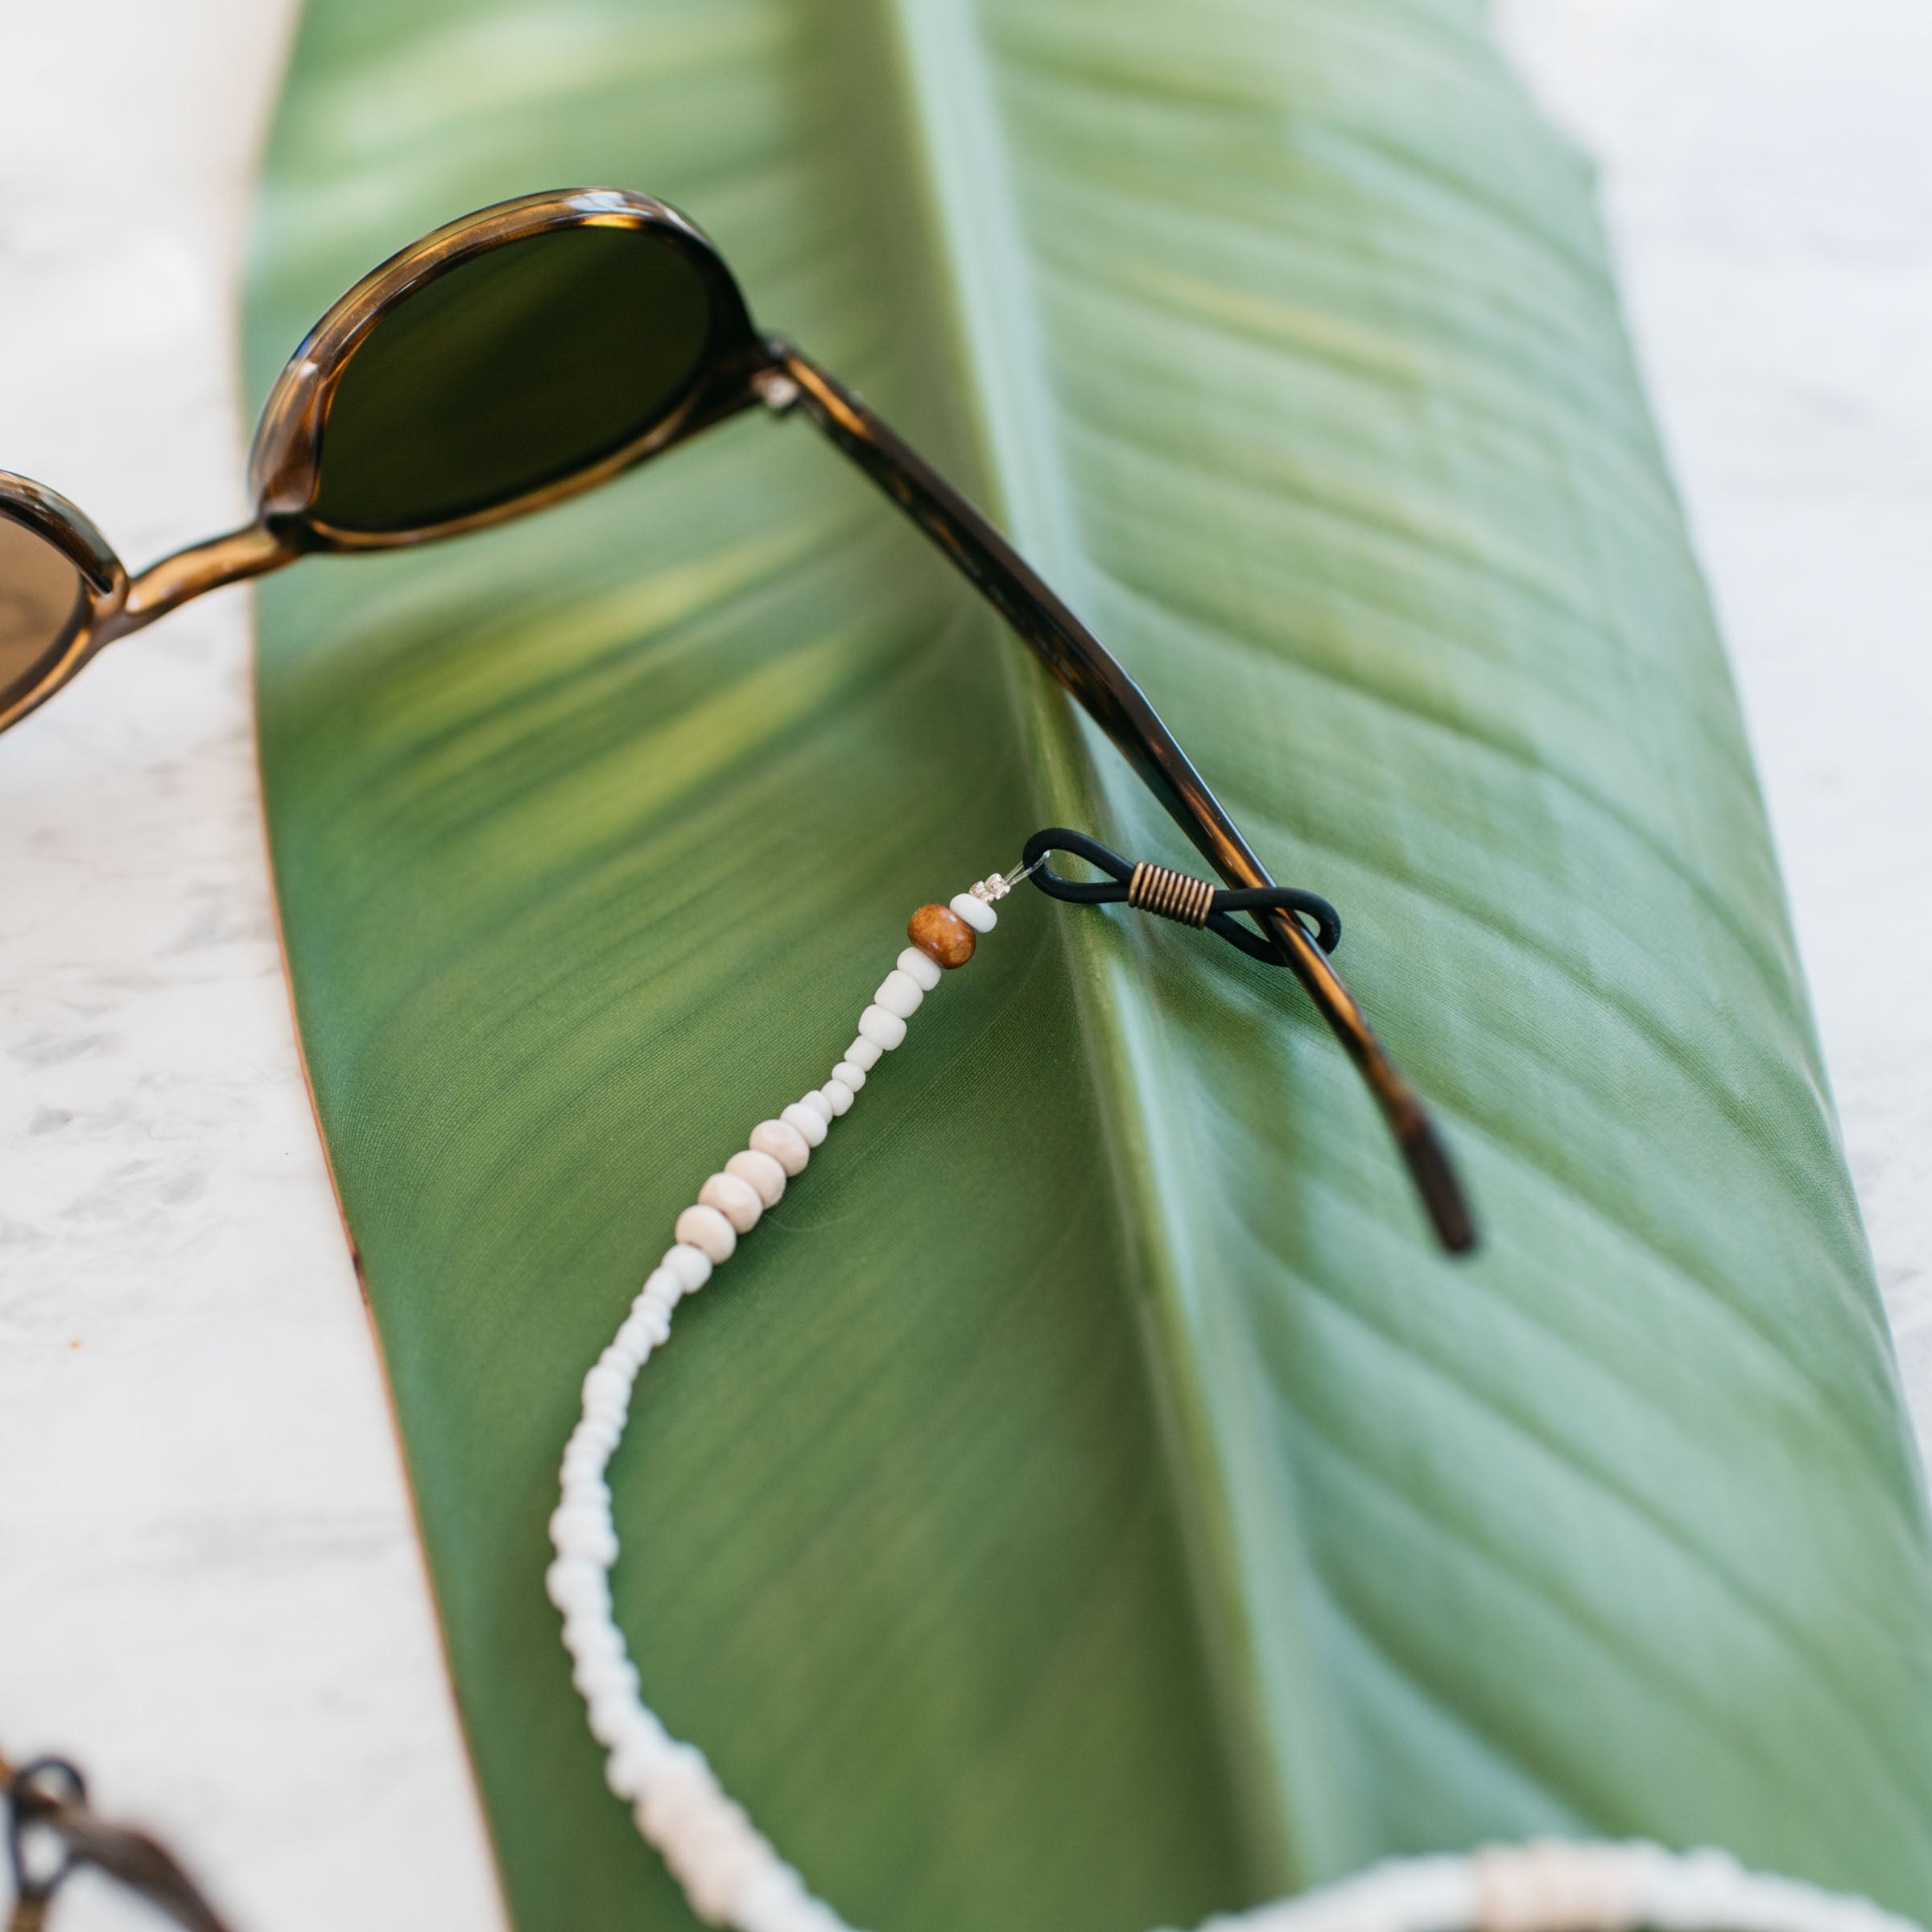 Sunglasses Strap/Cord • Pearl Beads + Wood - Stokedthebrand. Lifestyle products for outdoor adventures. Made in South Africa